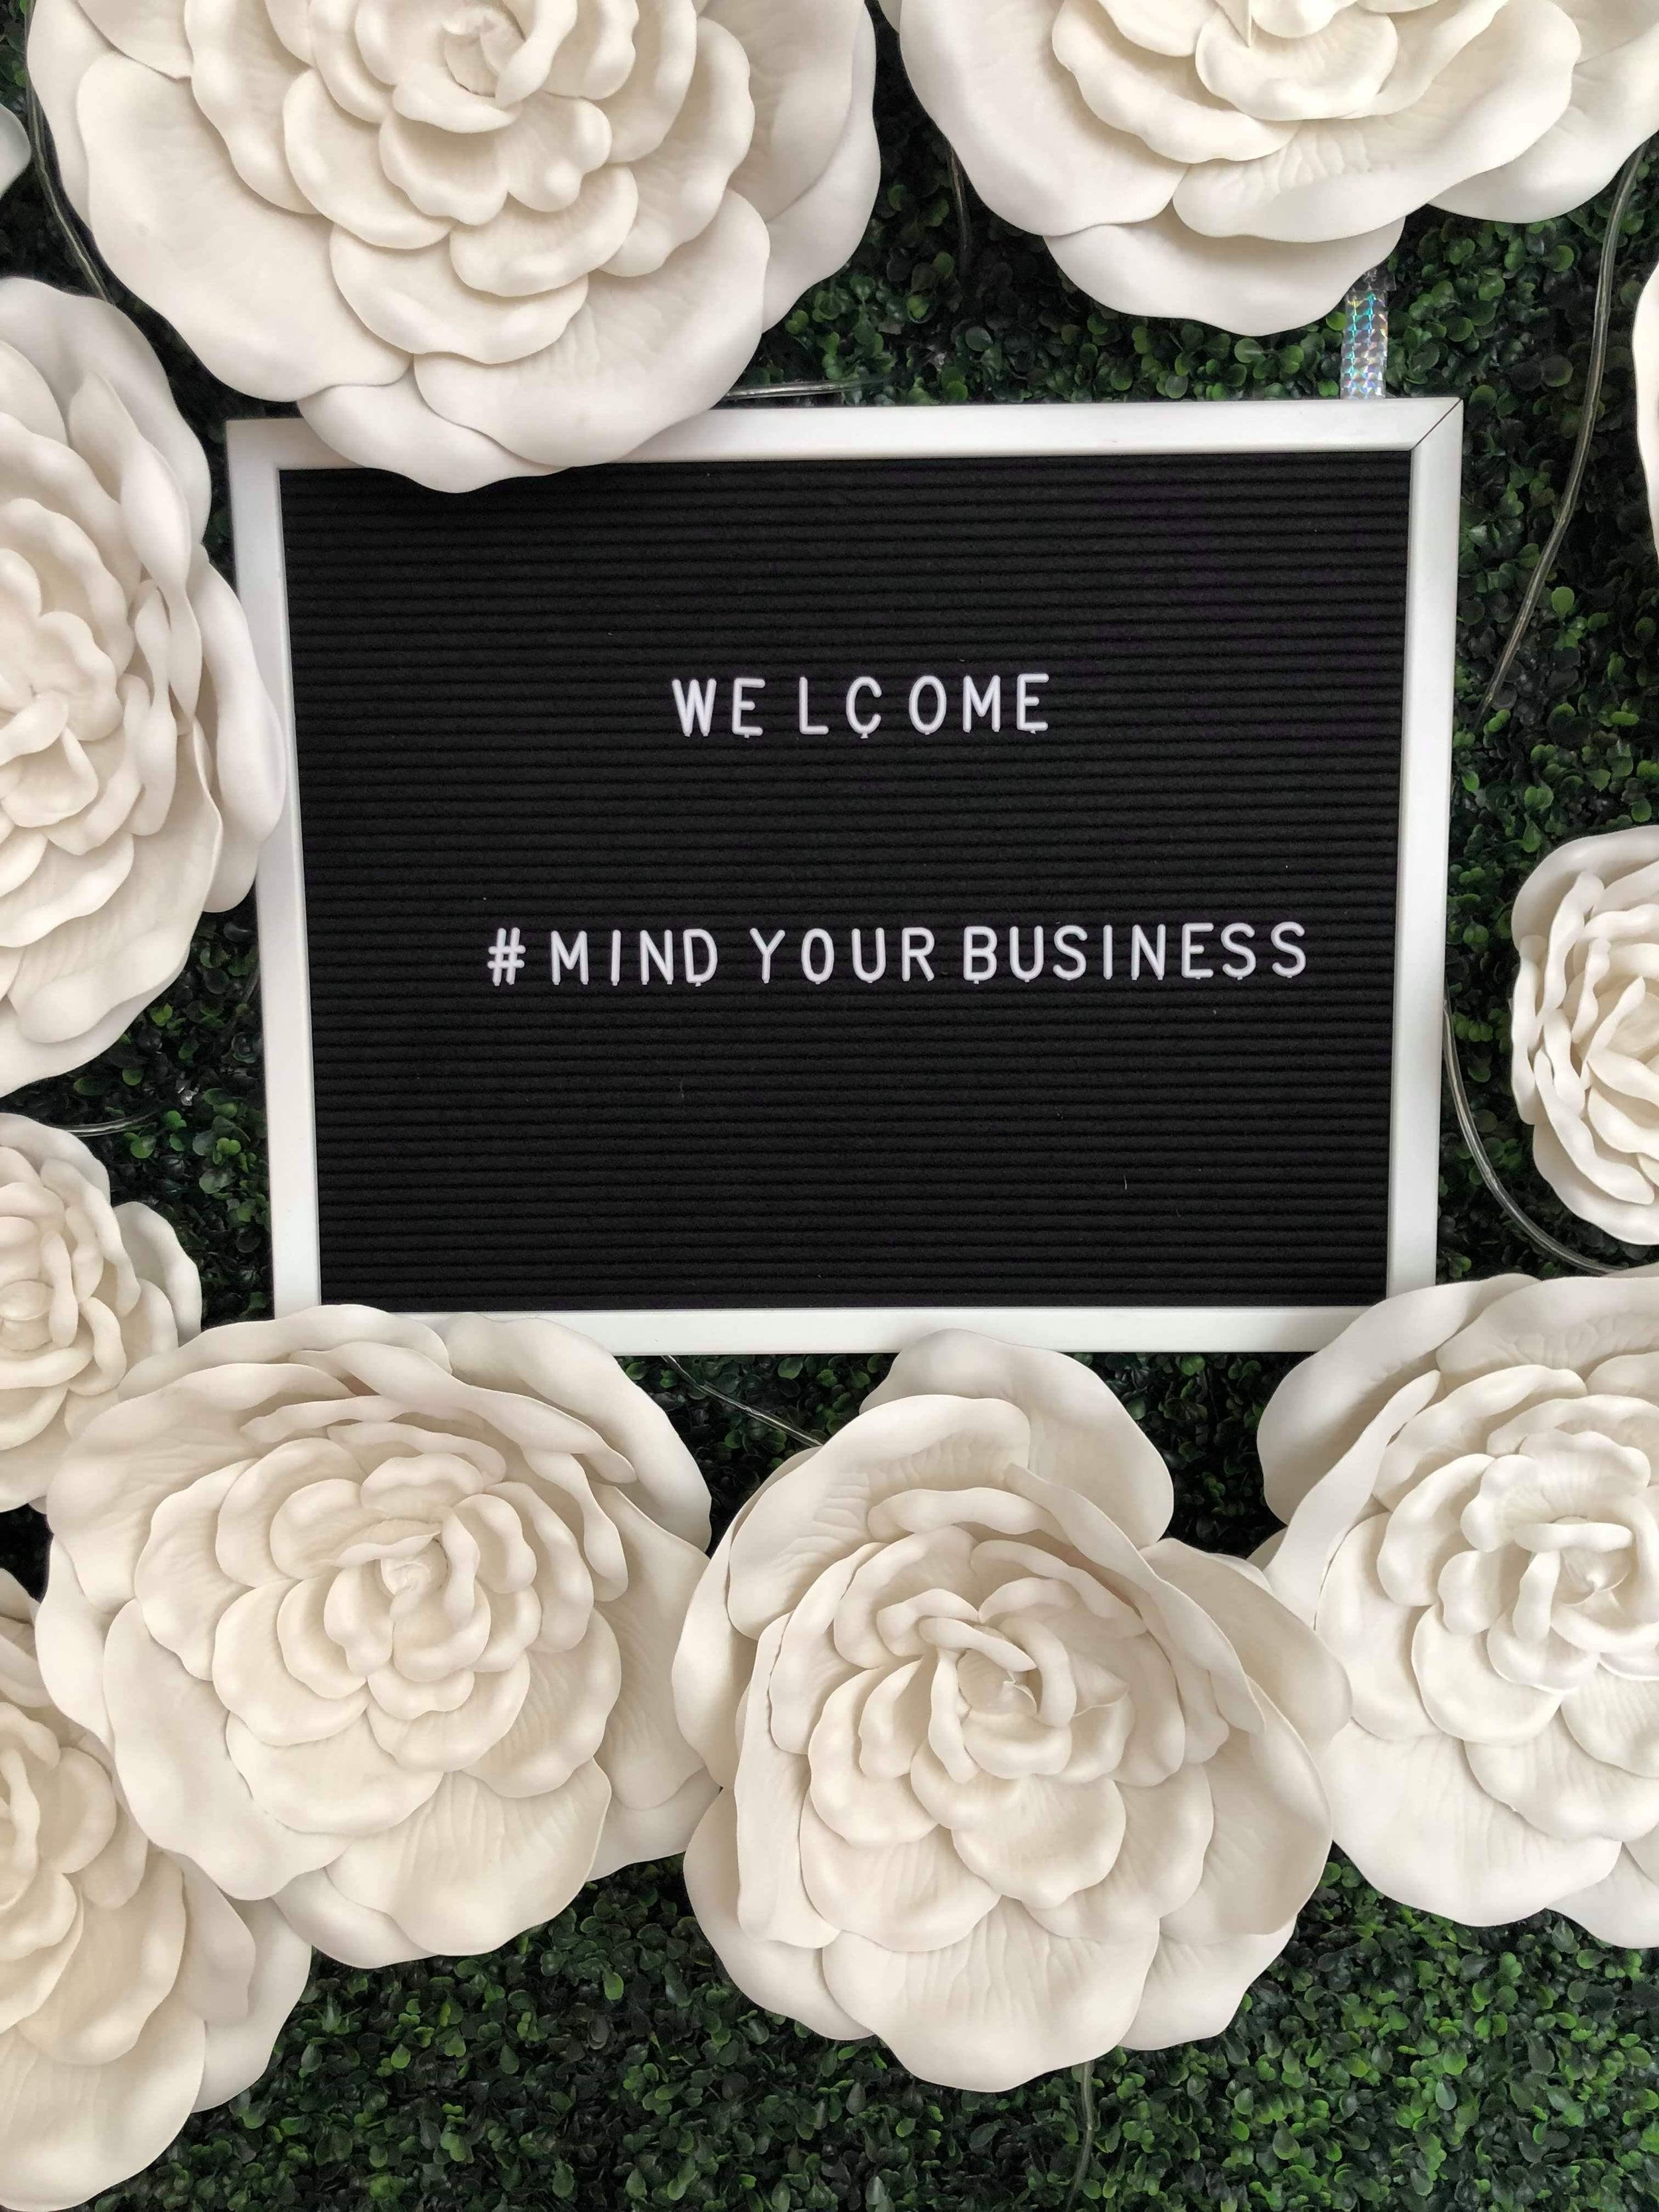 Welcome to the Mind Your Business Series!! The event was held at Holly's Event Center in Midtown Atlanta.